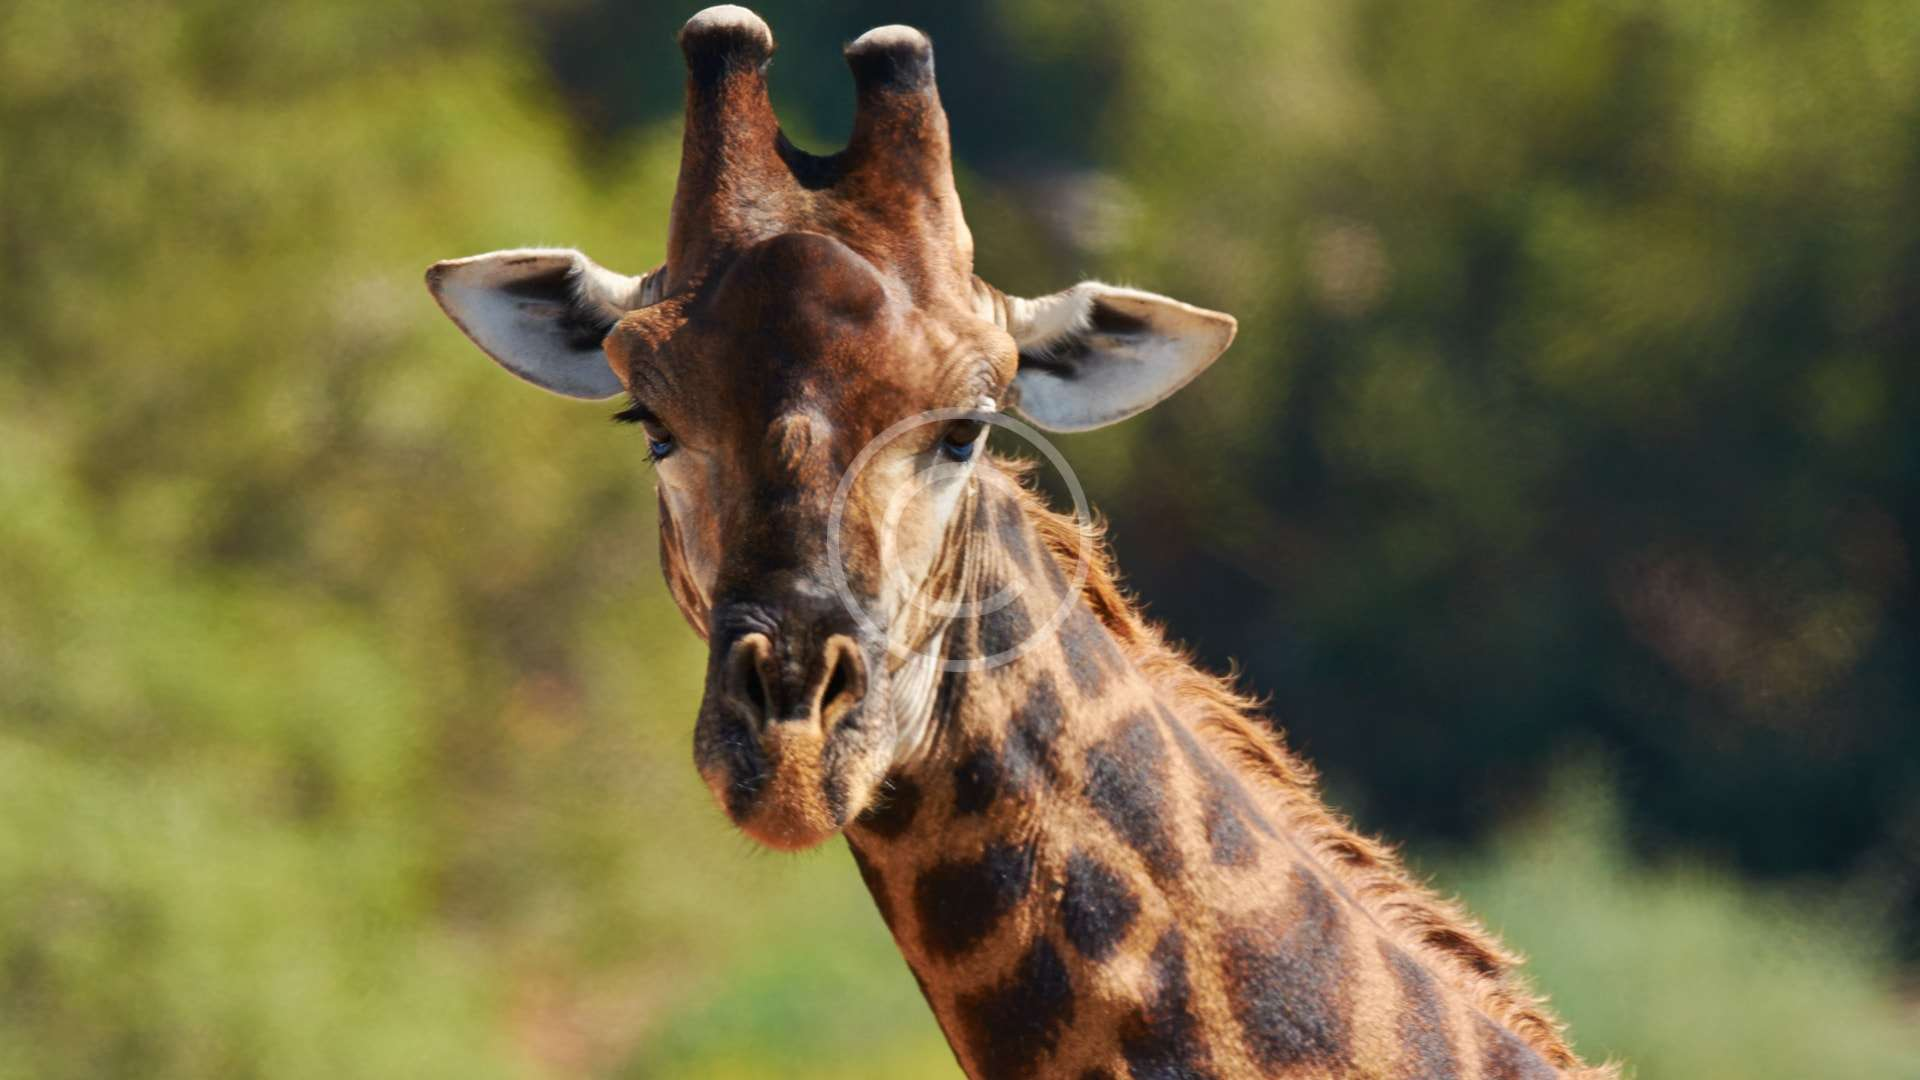 Donate to Giraffe Conservation